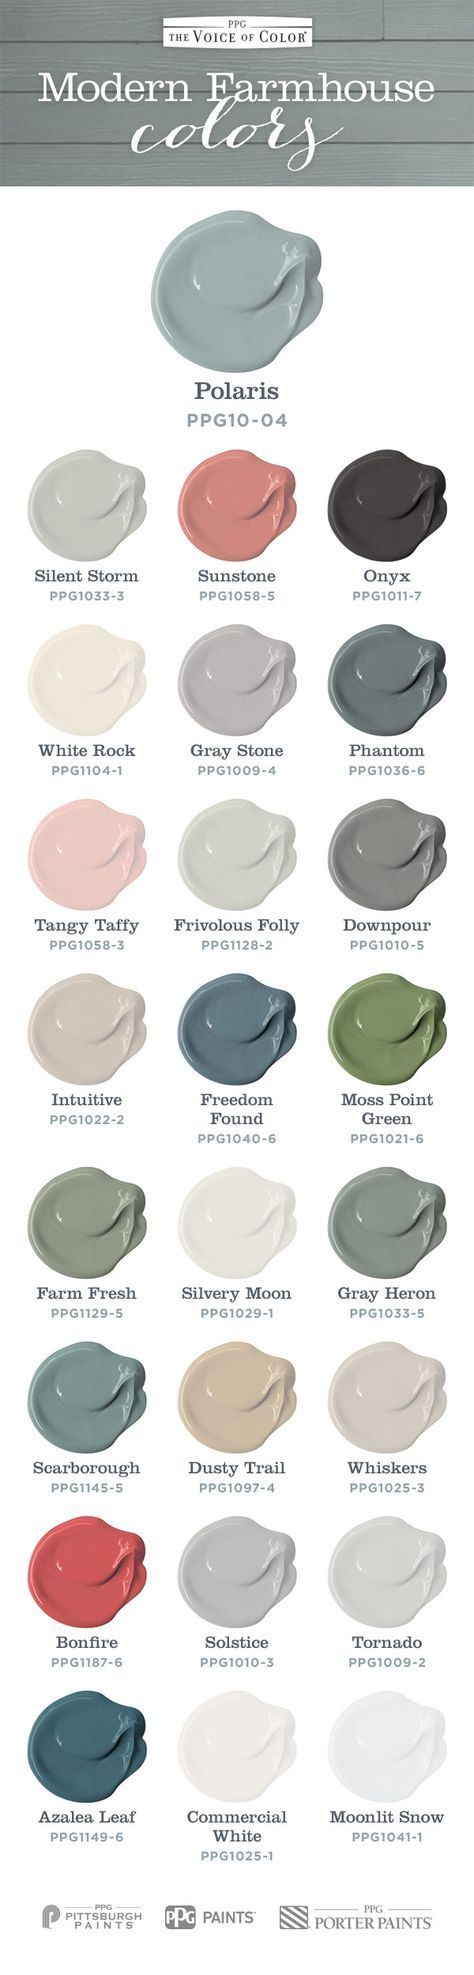 Modern farmhouse inspired styles are extremely trendy, as seen on popular design show Fixer Upper, with designers pulling from French, Industrial and Country styles featuring these paint colors. Achieve the rustic, but soft modern farmhouse look in your own home with these paint colors!